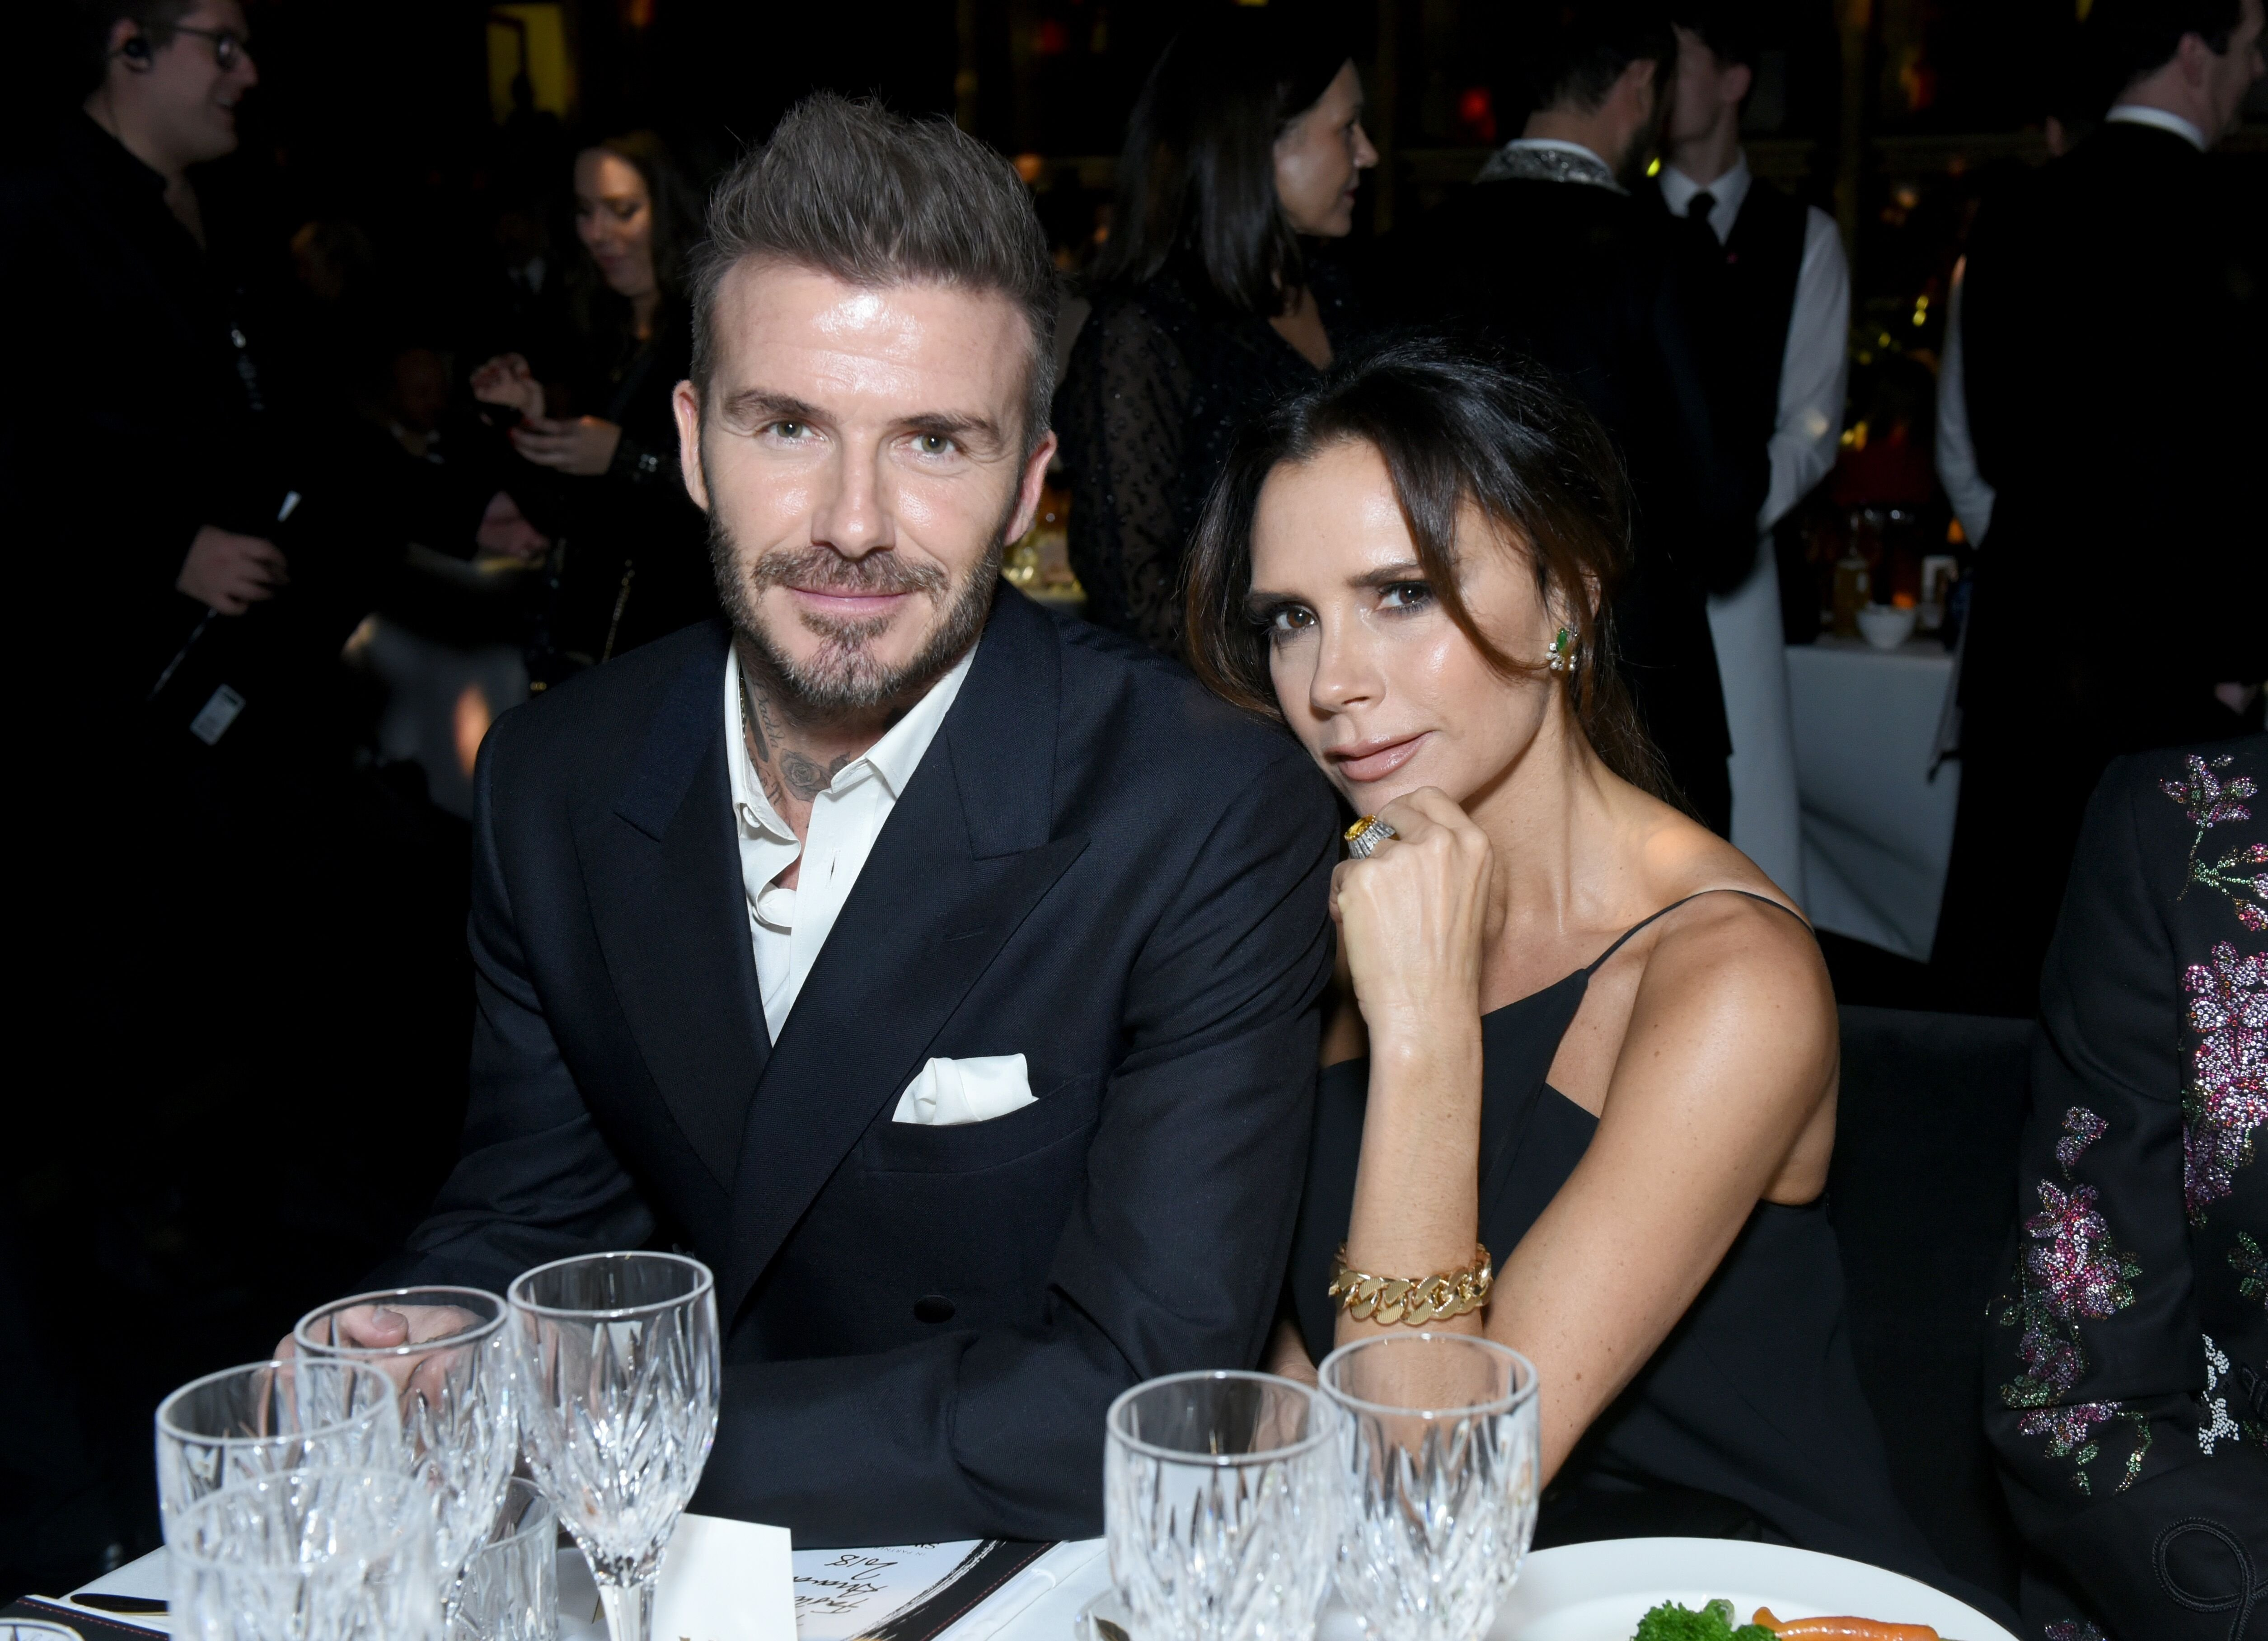 David Beckham and Victoria Beckham attend The Fashion Awards 2018 In Partnership With Swarovski. | Source: Getty Images